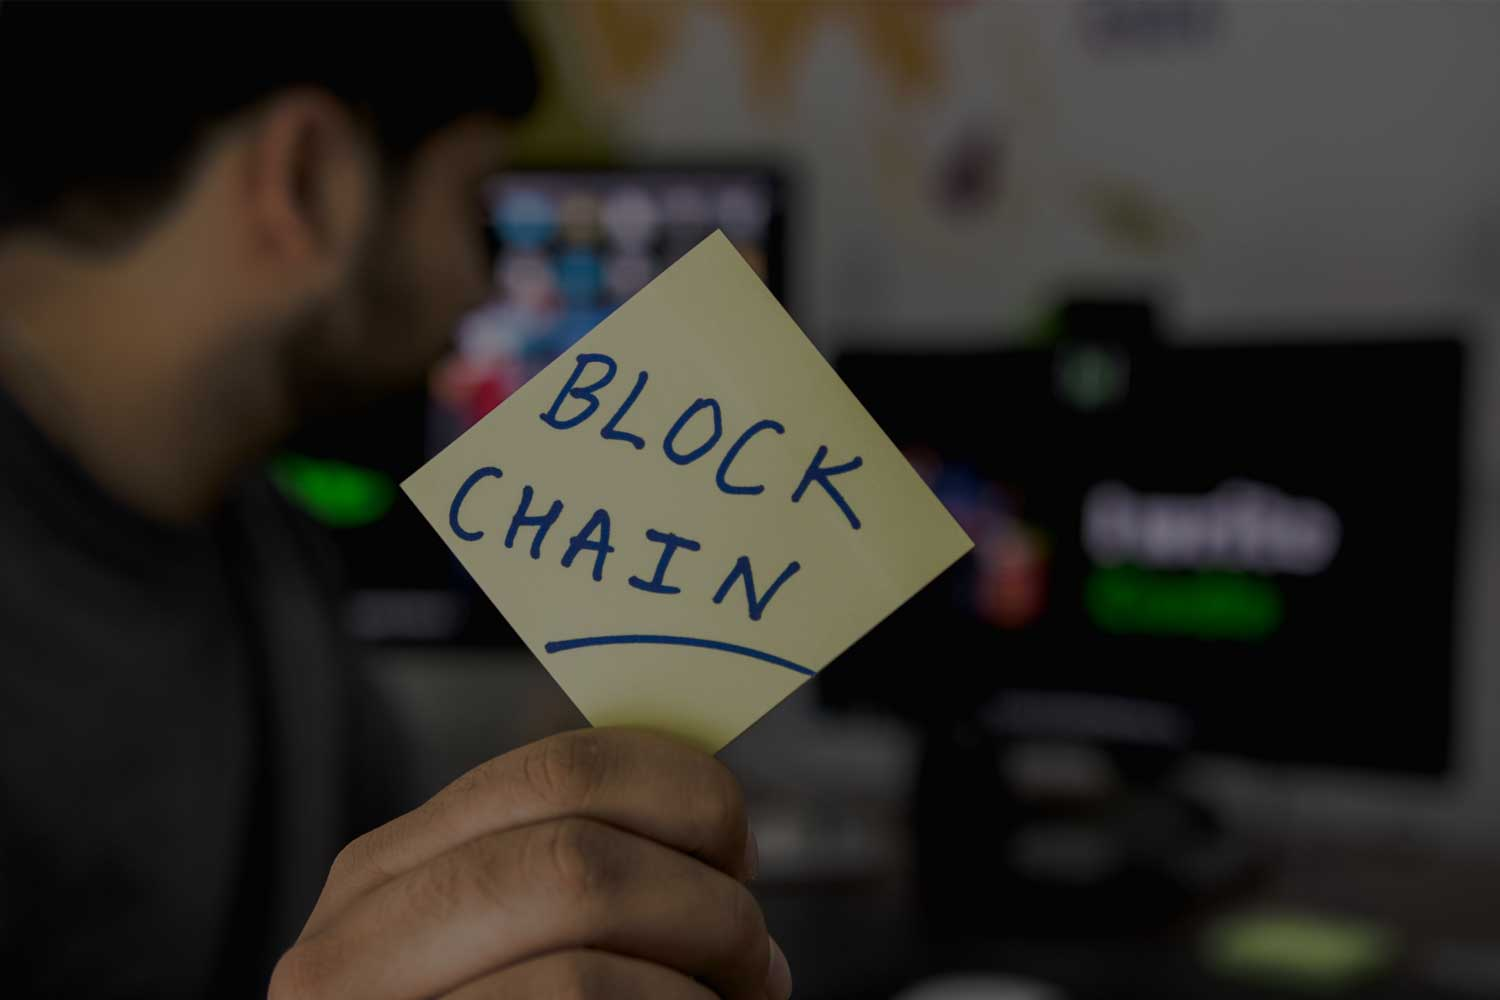 Post-it note with blockchain written on it